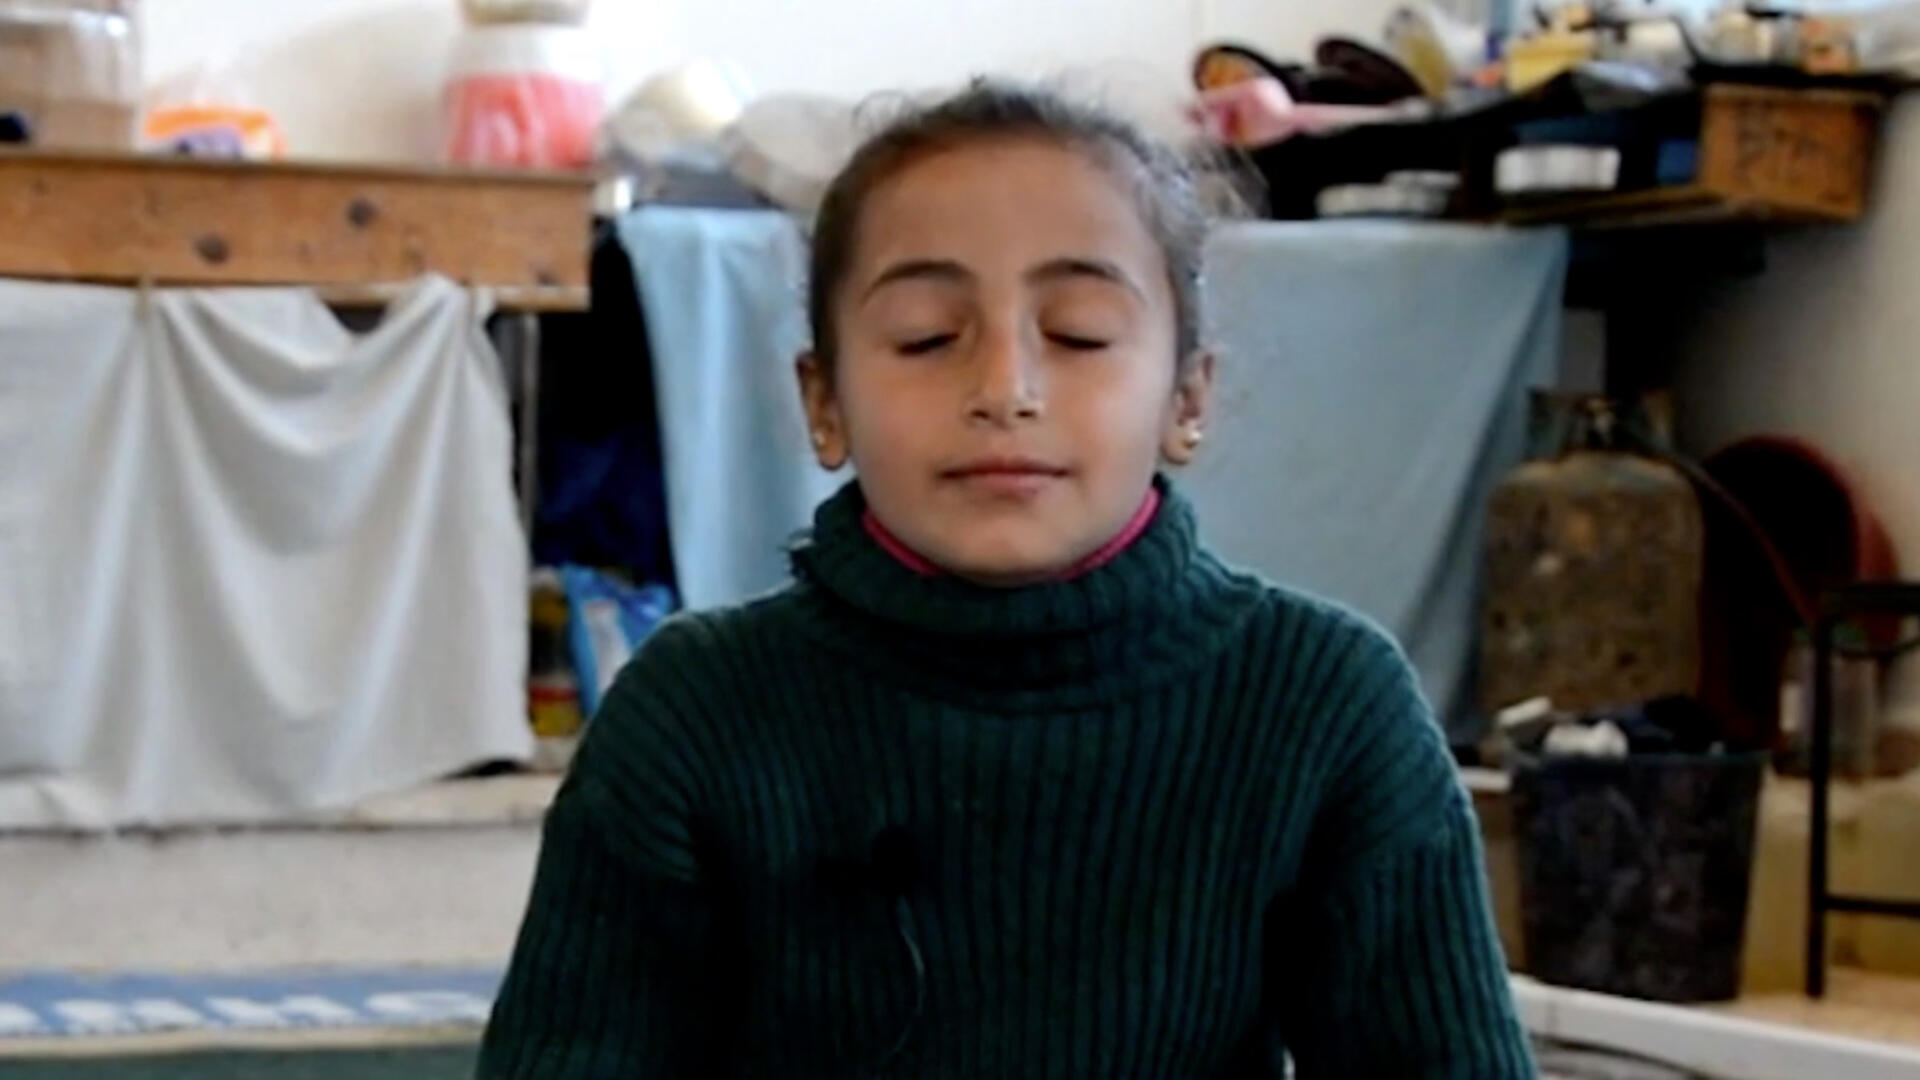 This Syrian 8 year old practices mindfulness to conquer her fears